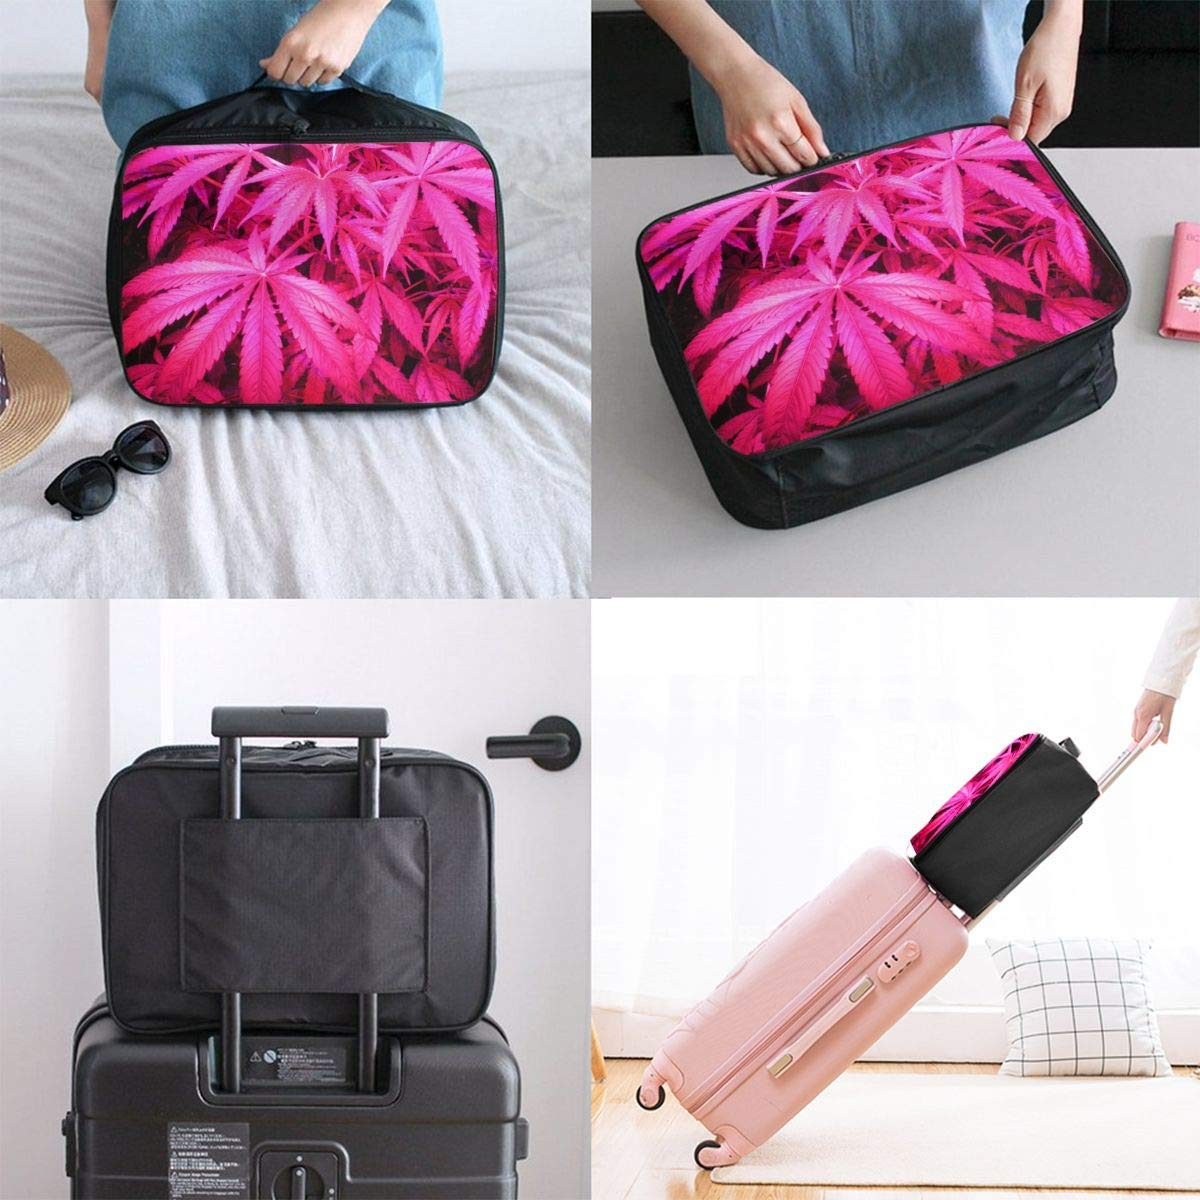 JTRVW Luggage Bags for Travel Travel Lightweight Waterproof Foldable Storage Carry Luggage Duffle Tote Bag Pink Weed Leaf